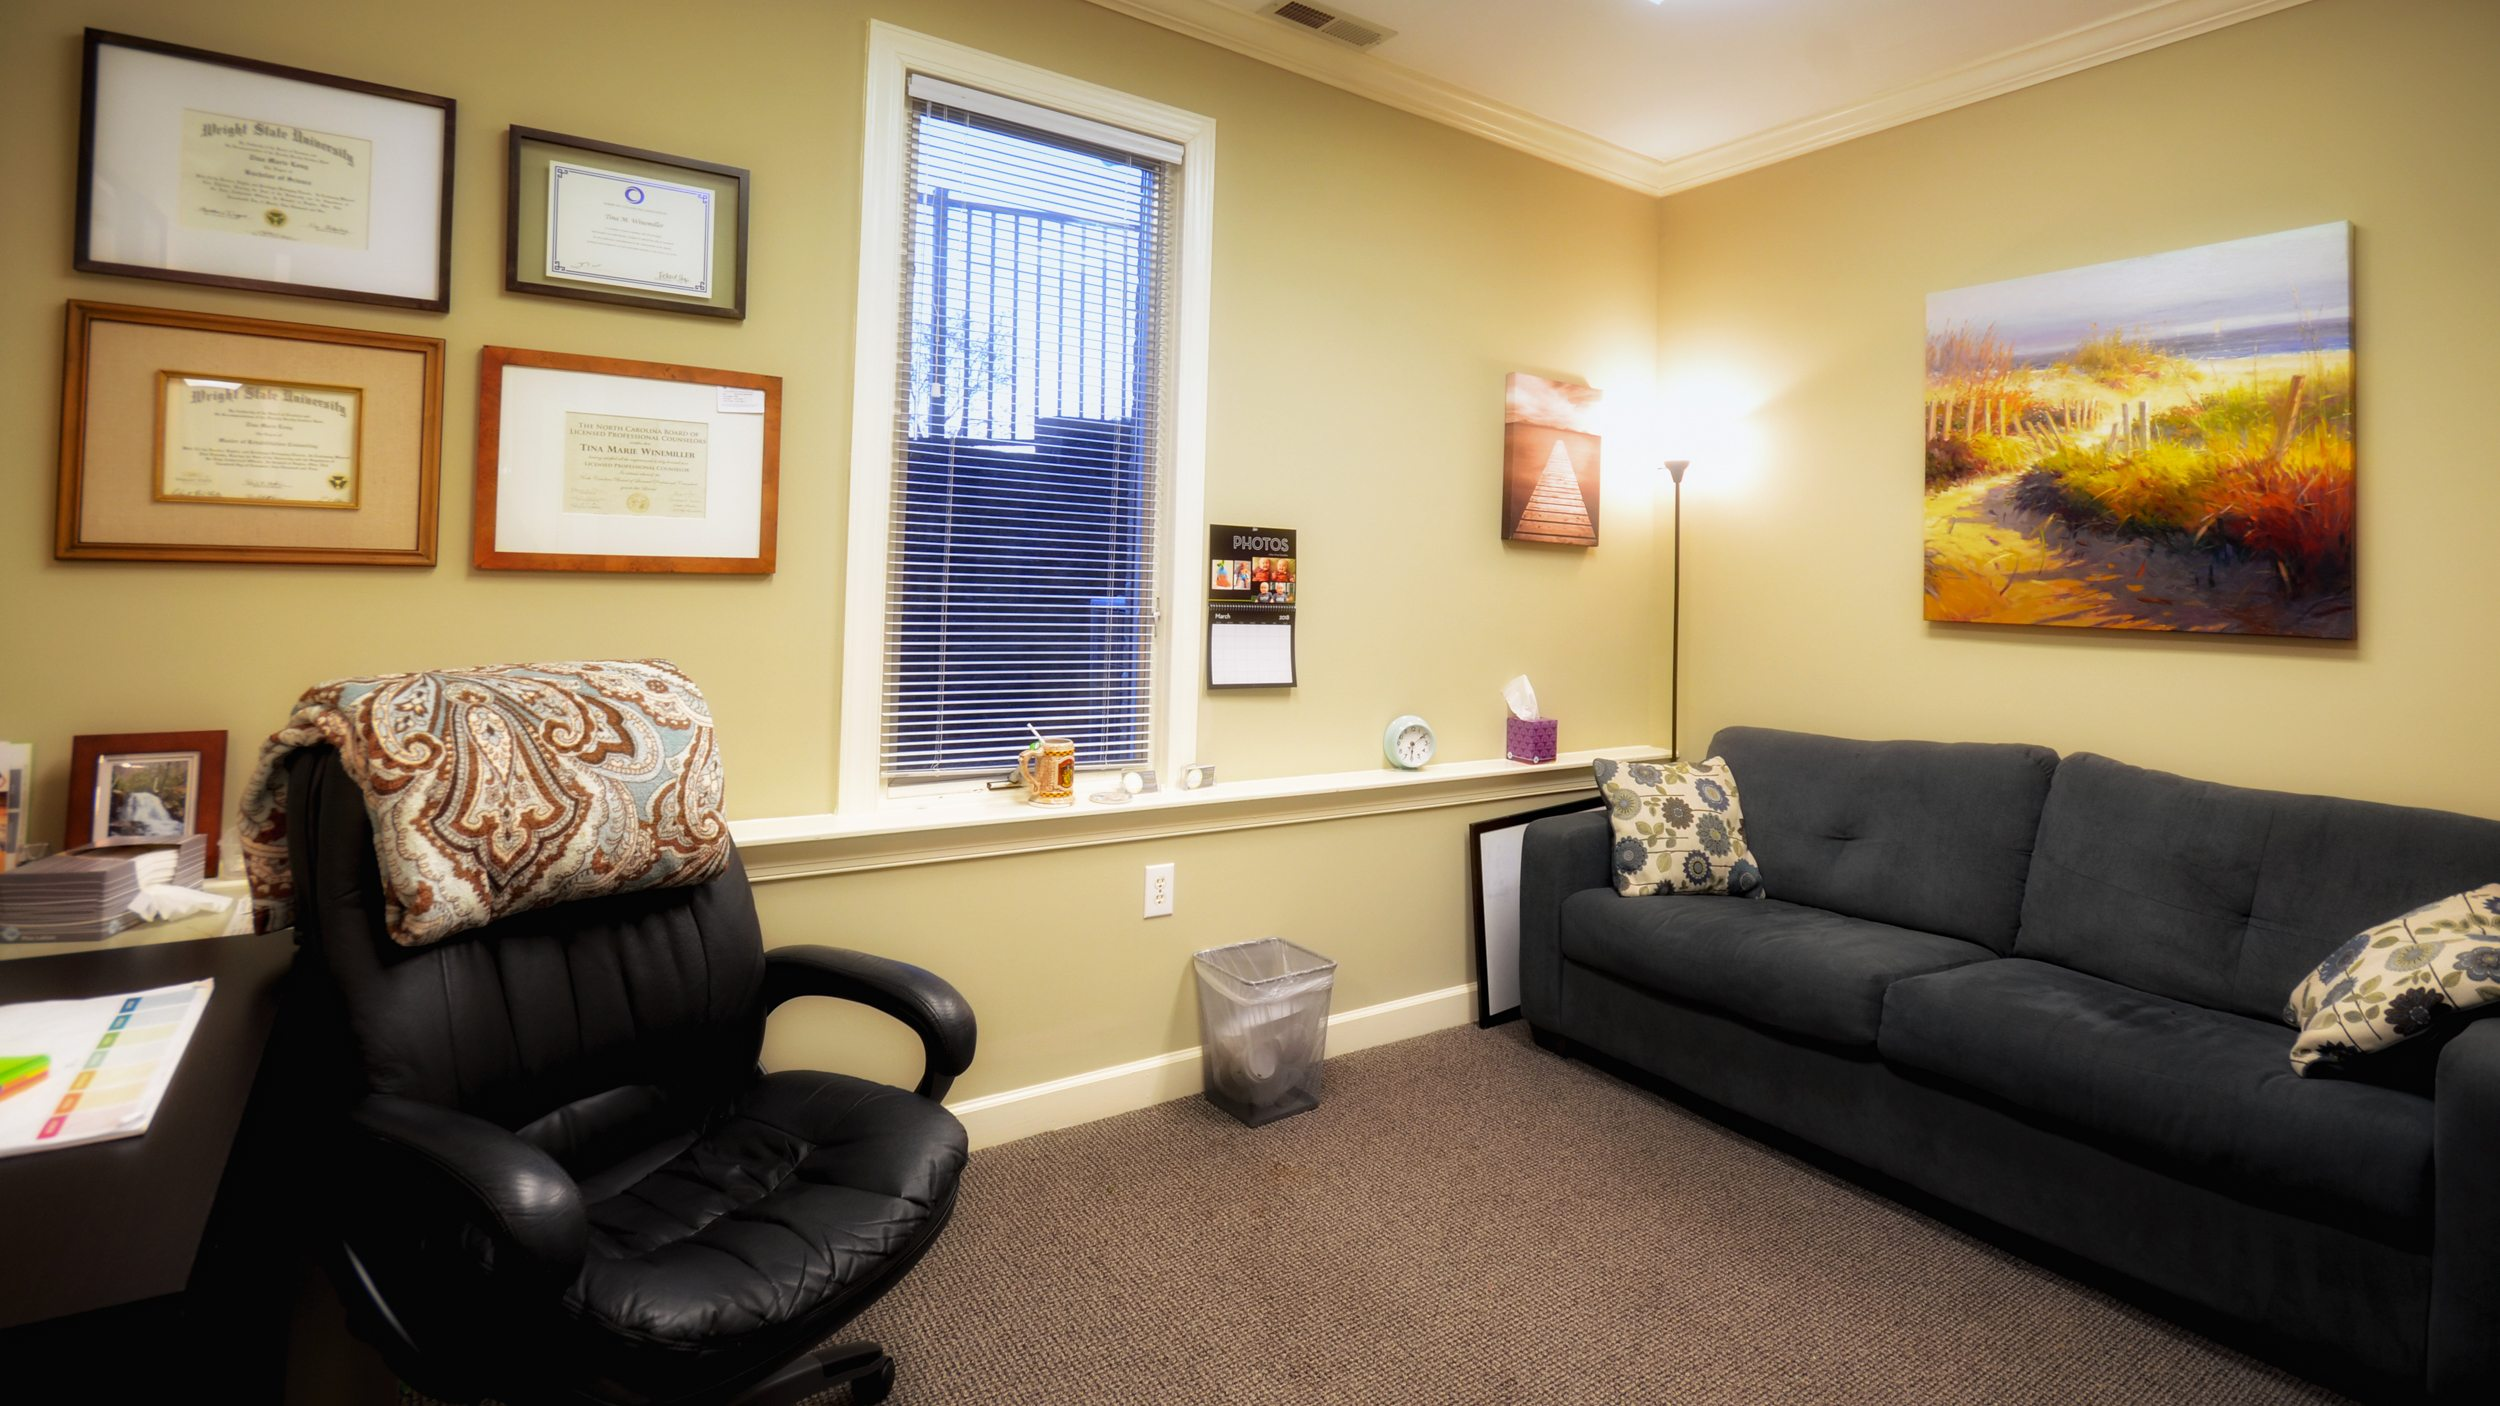 Simply_Thrive_Therapeutic_Associates-office-Raeigh-Cary-Durham-North_Carolia-therapists